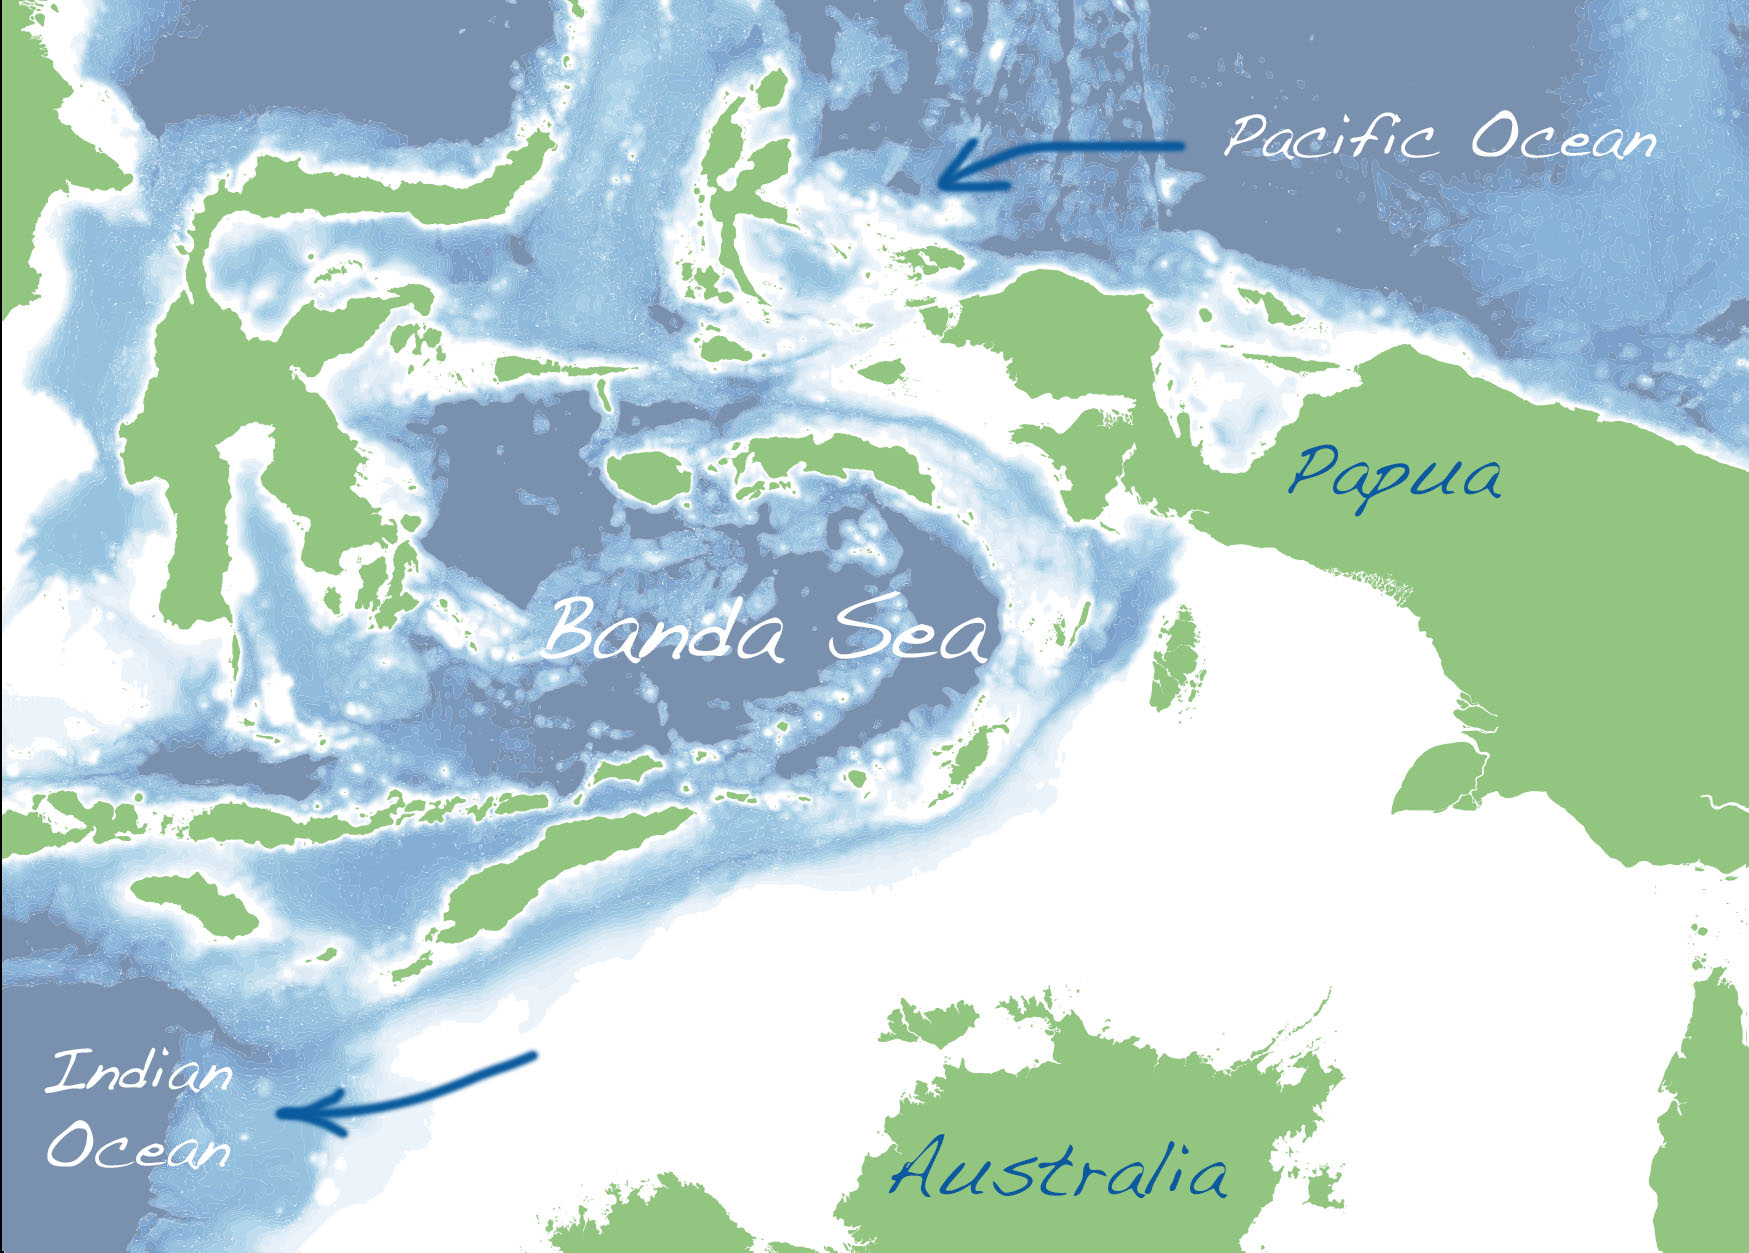 The Banda Sea